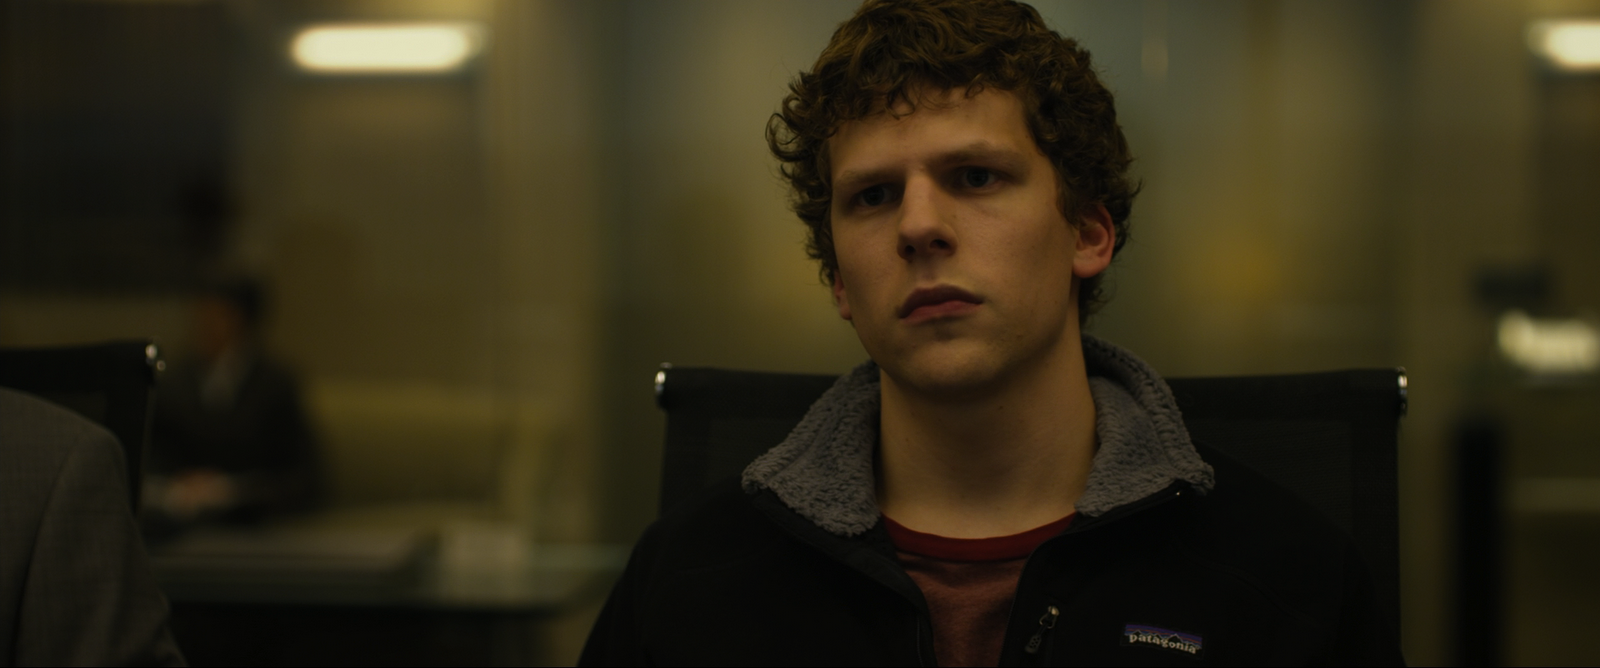 Technology related Movies The Social Network